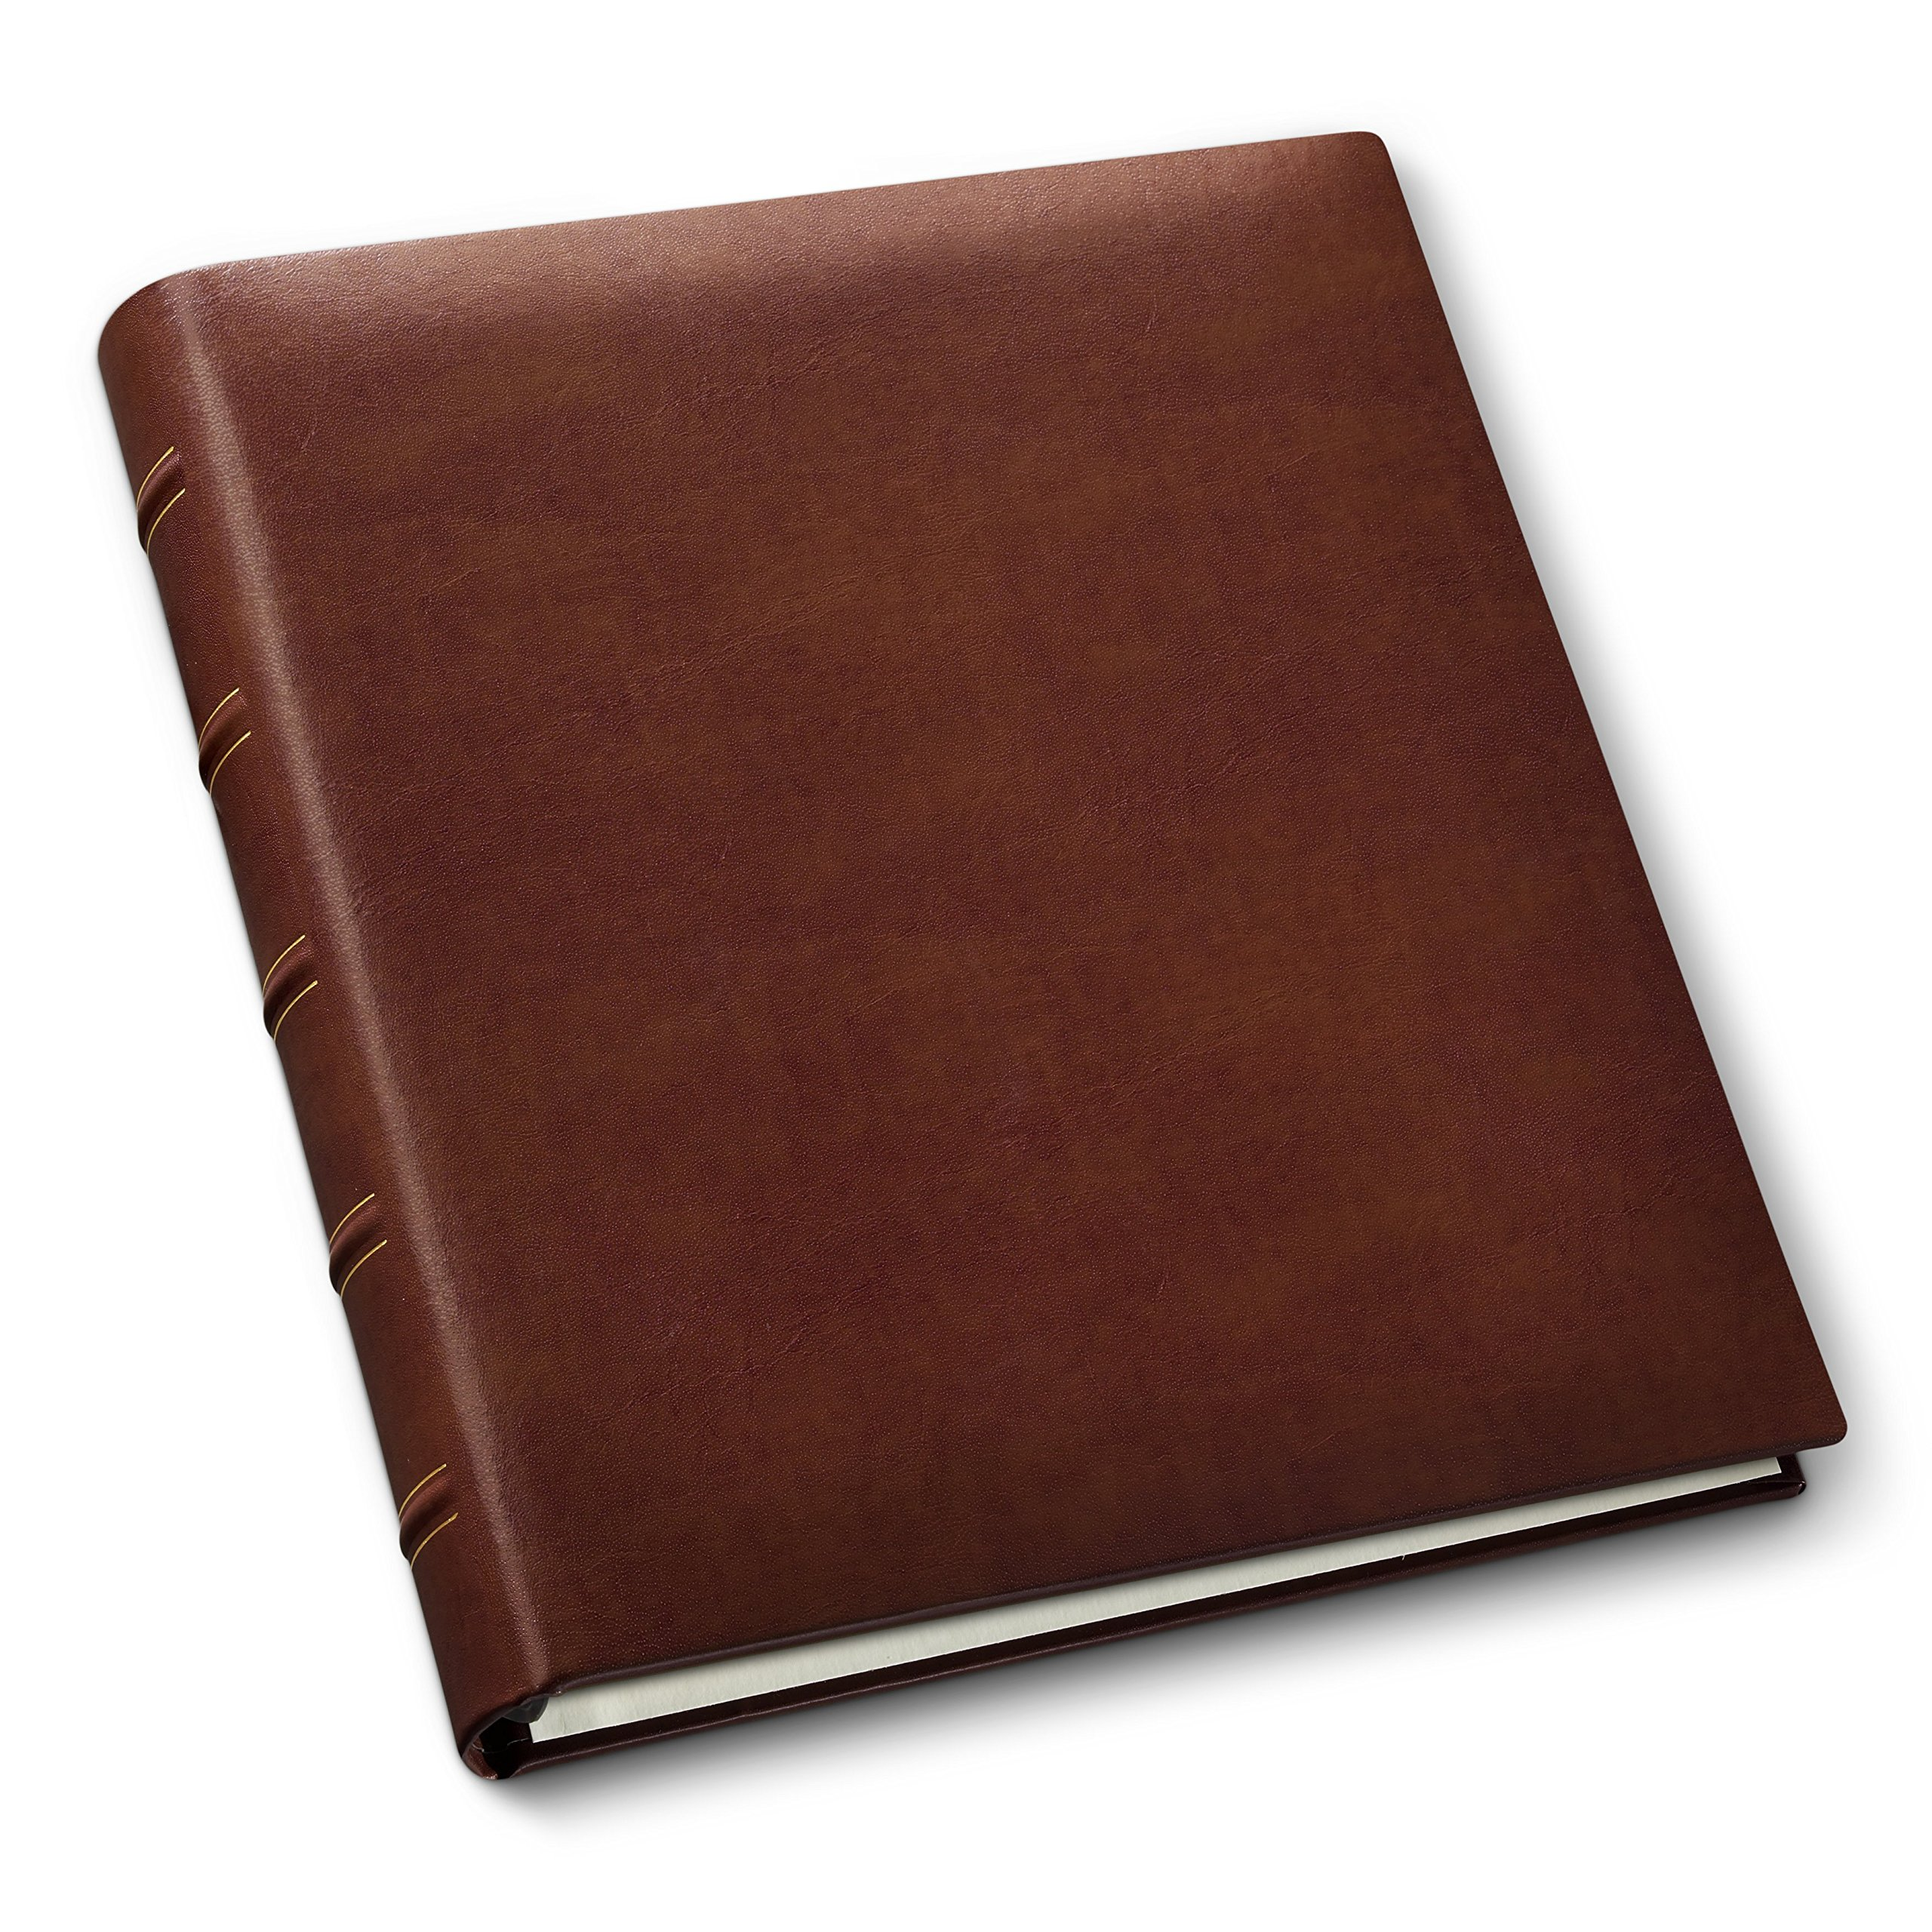 Gallery Leather Classic  Leather Album, British Tan by Gallery Leather (Image #1)